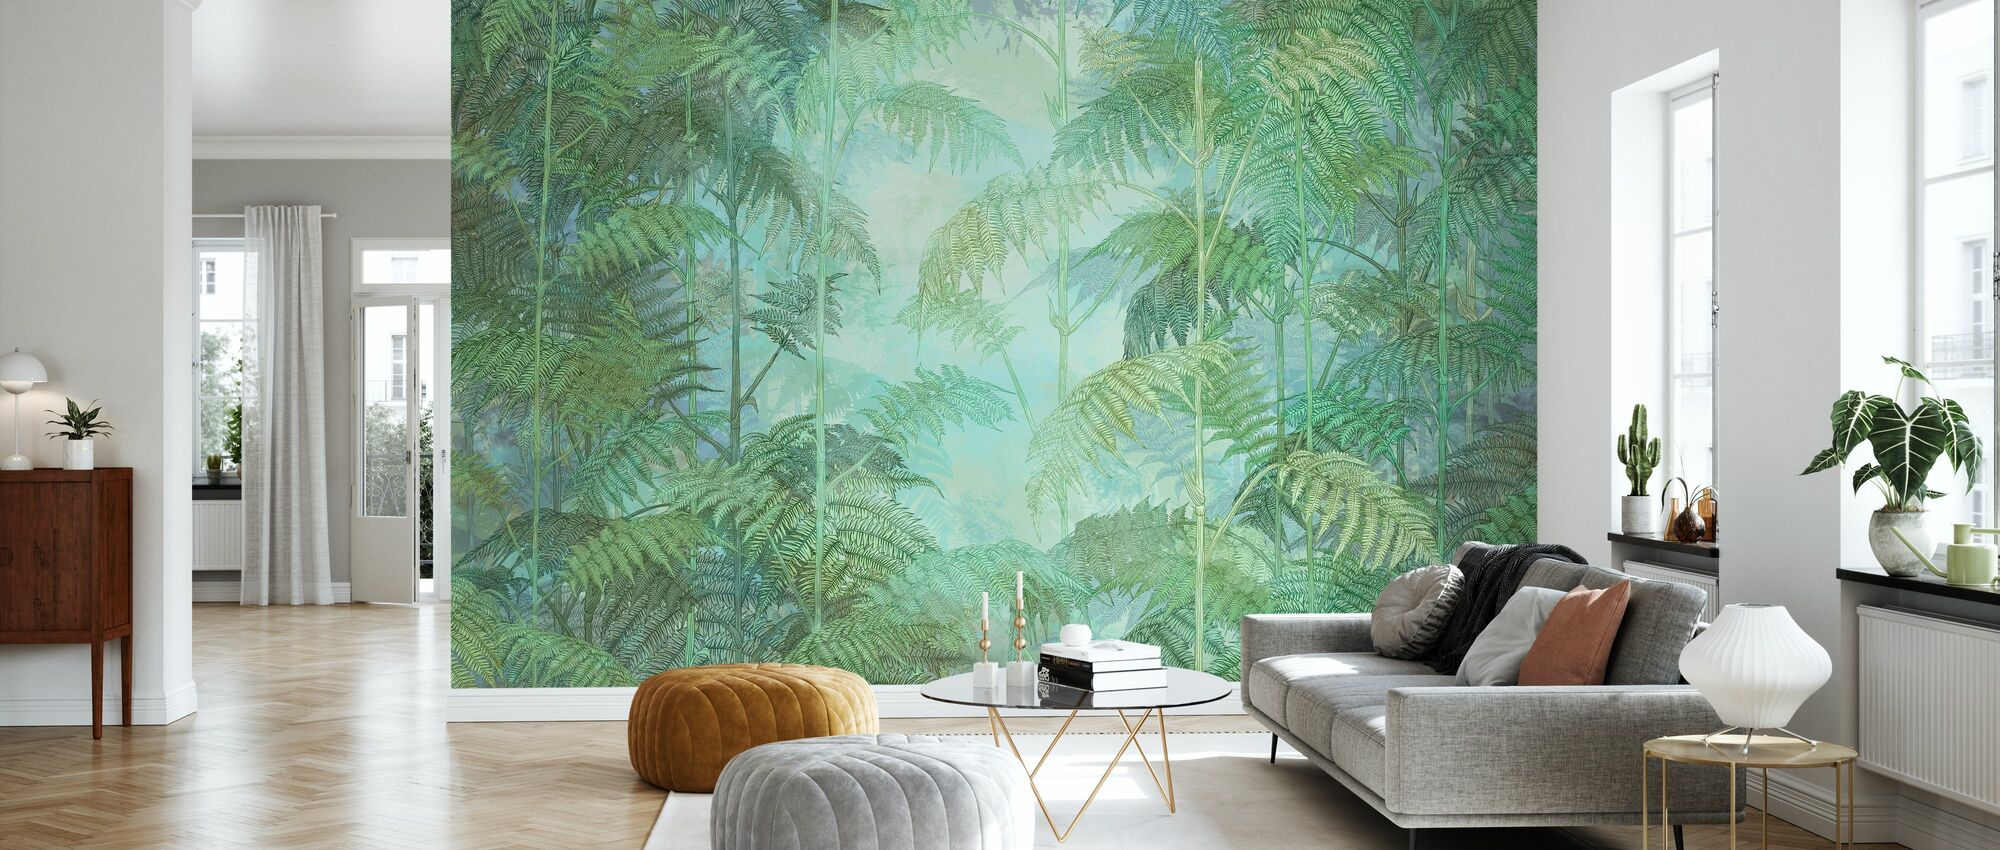 Into the Fern - Wallpaper - Living Room